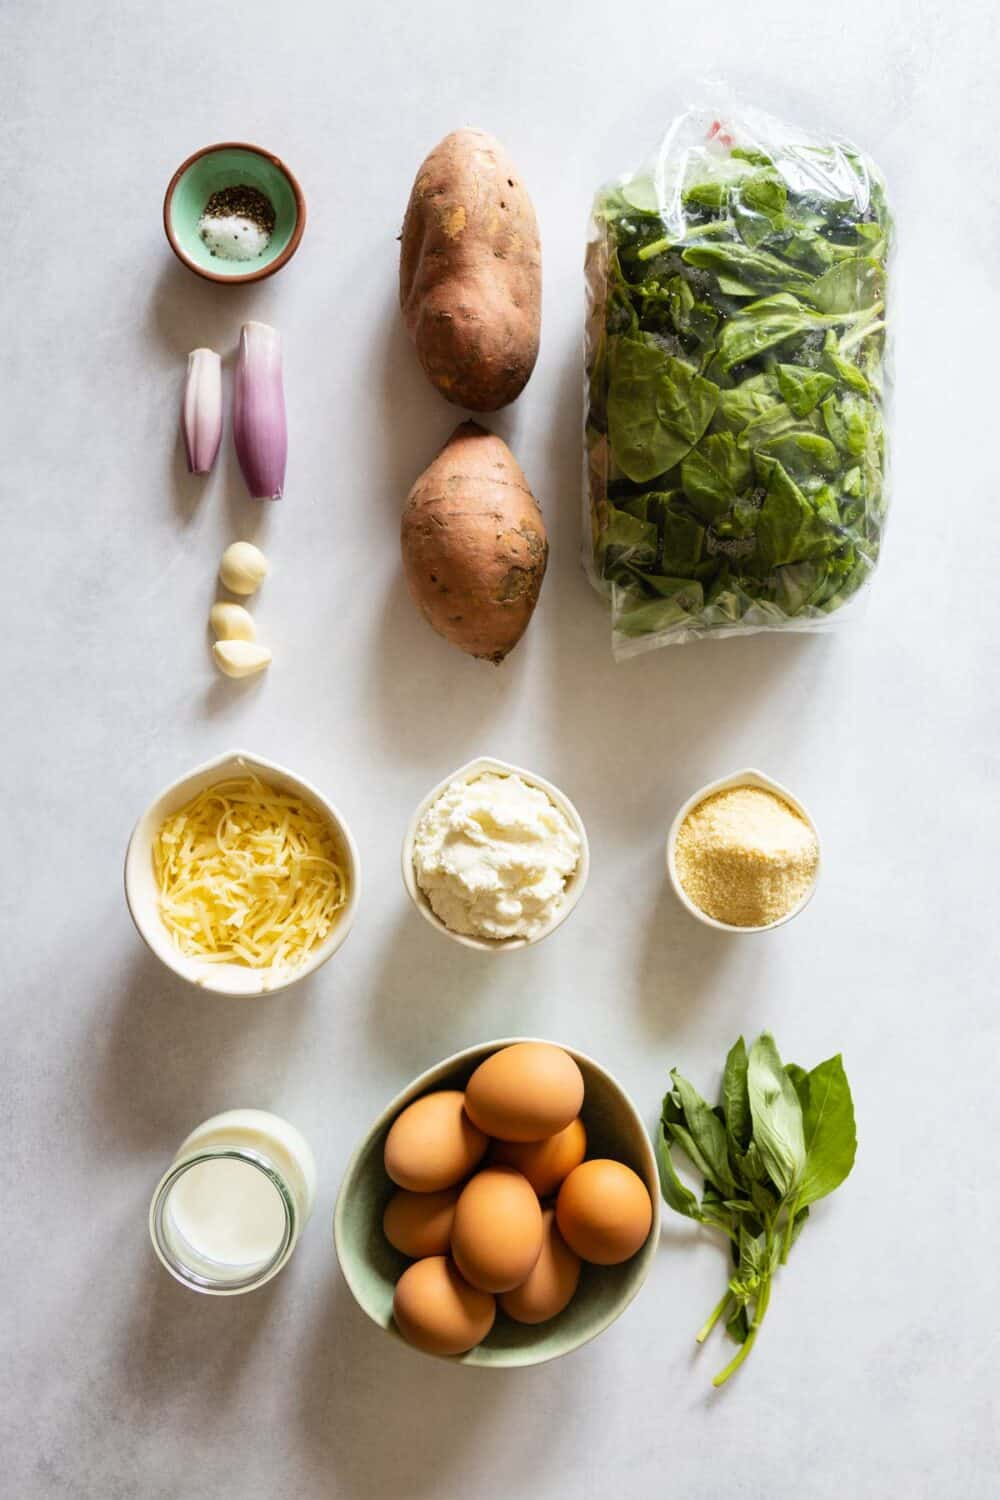 All ingredients for the crustless spinach quiche laid out on a kitchen counter.